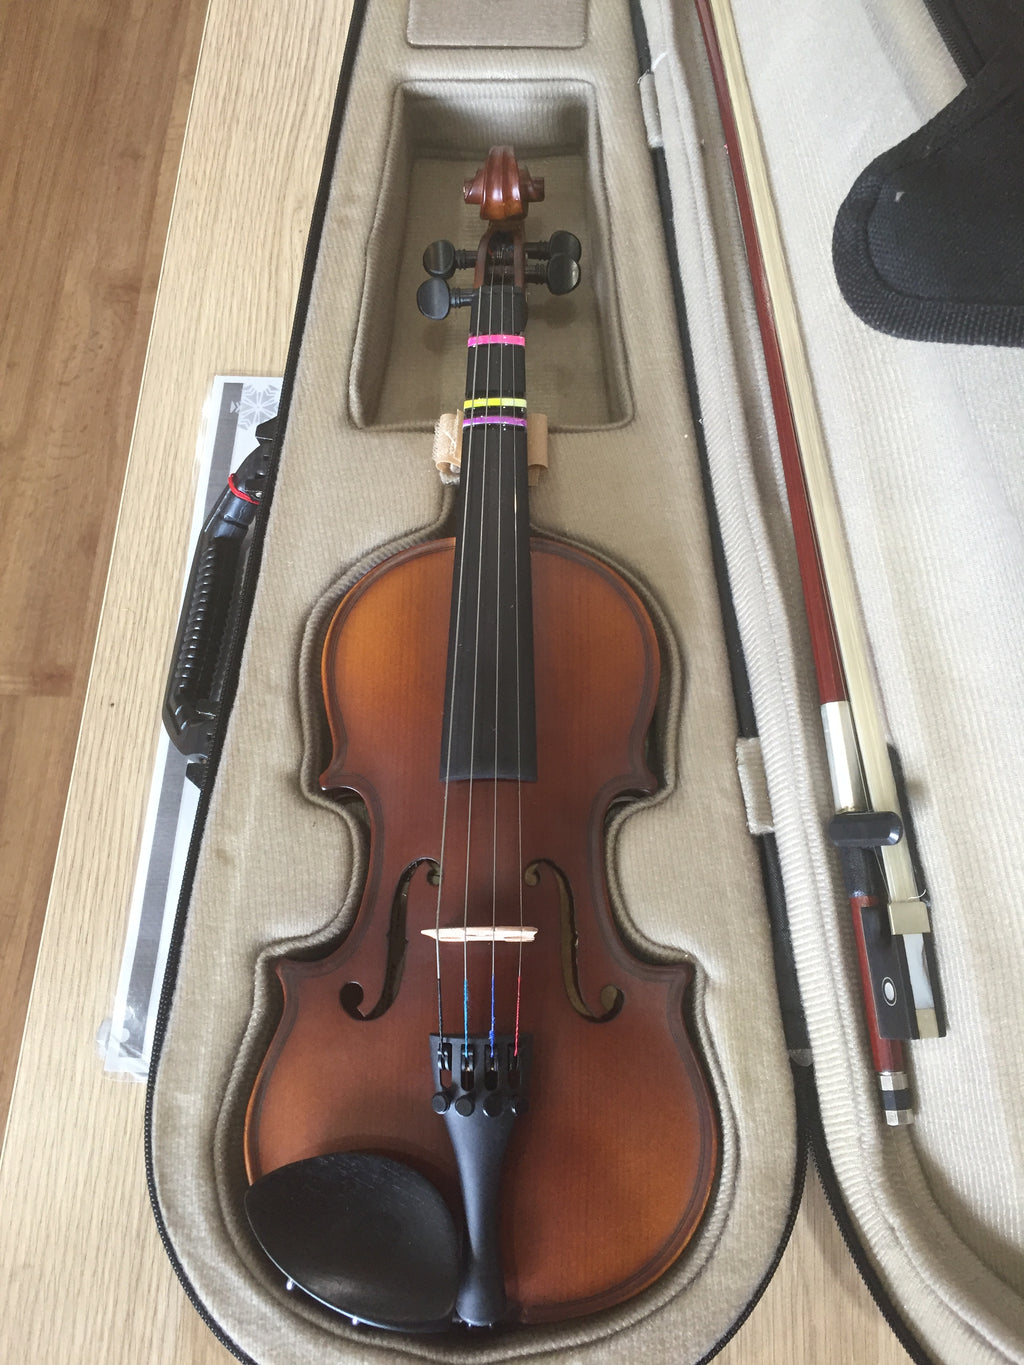 Second-Hand - Enrico Student Plus II (1/8 Size) Violin Outfit